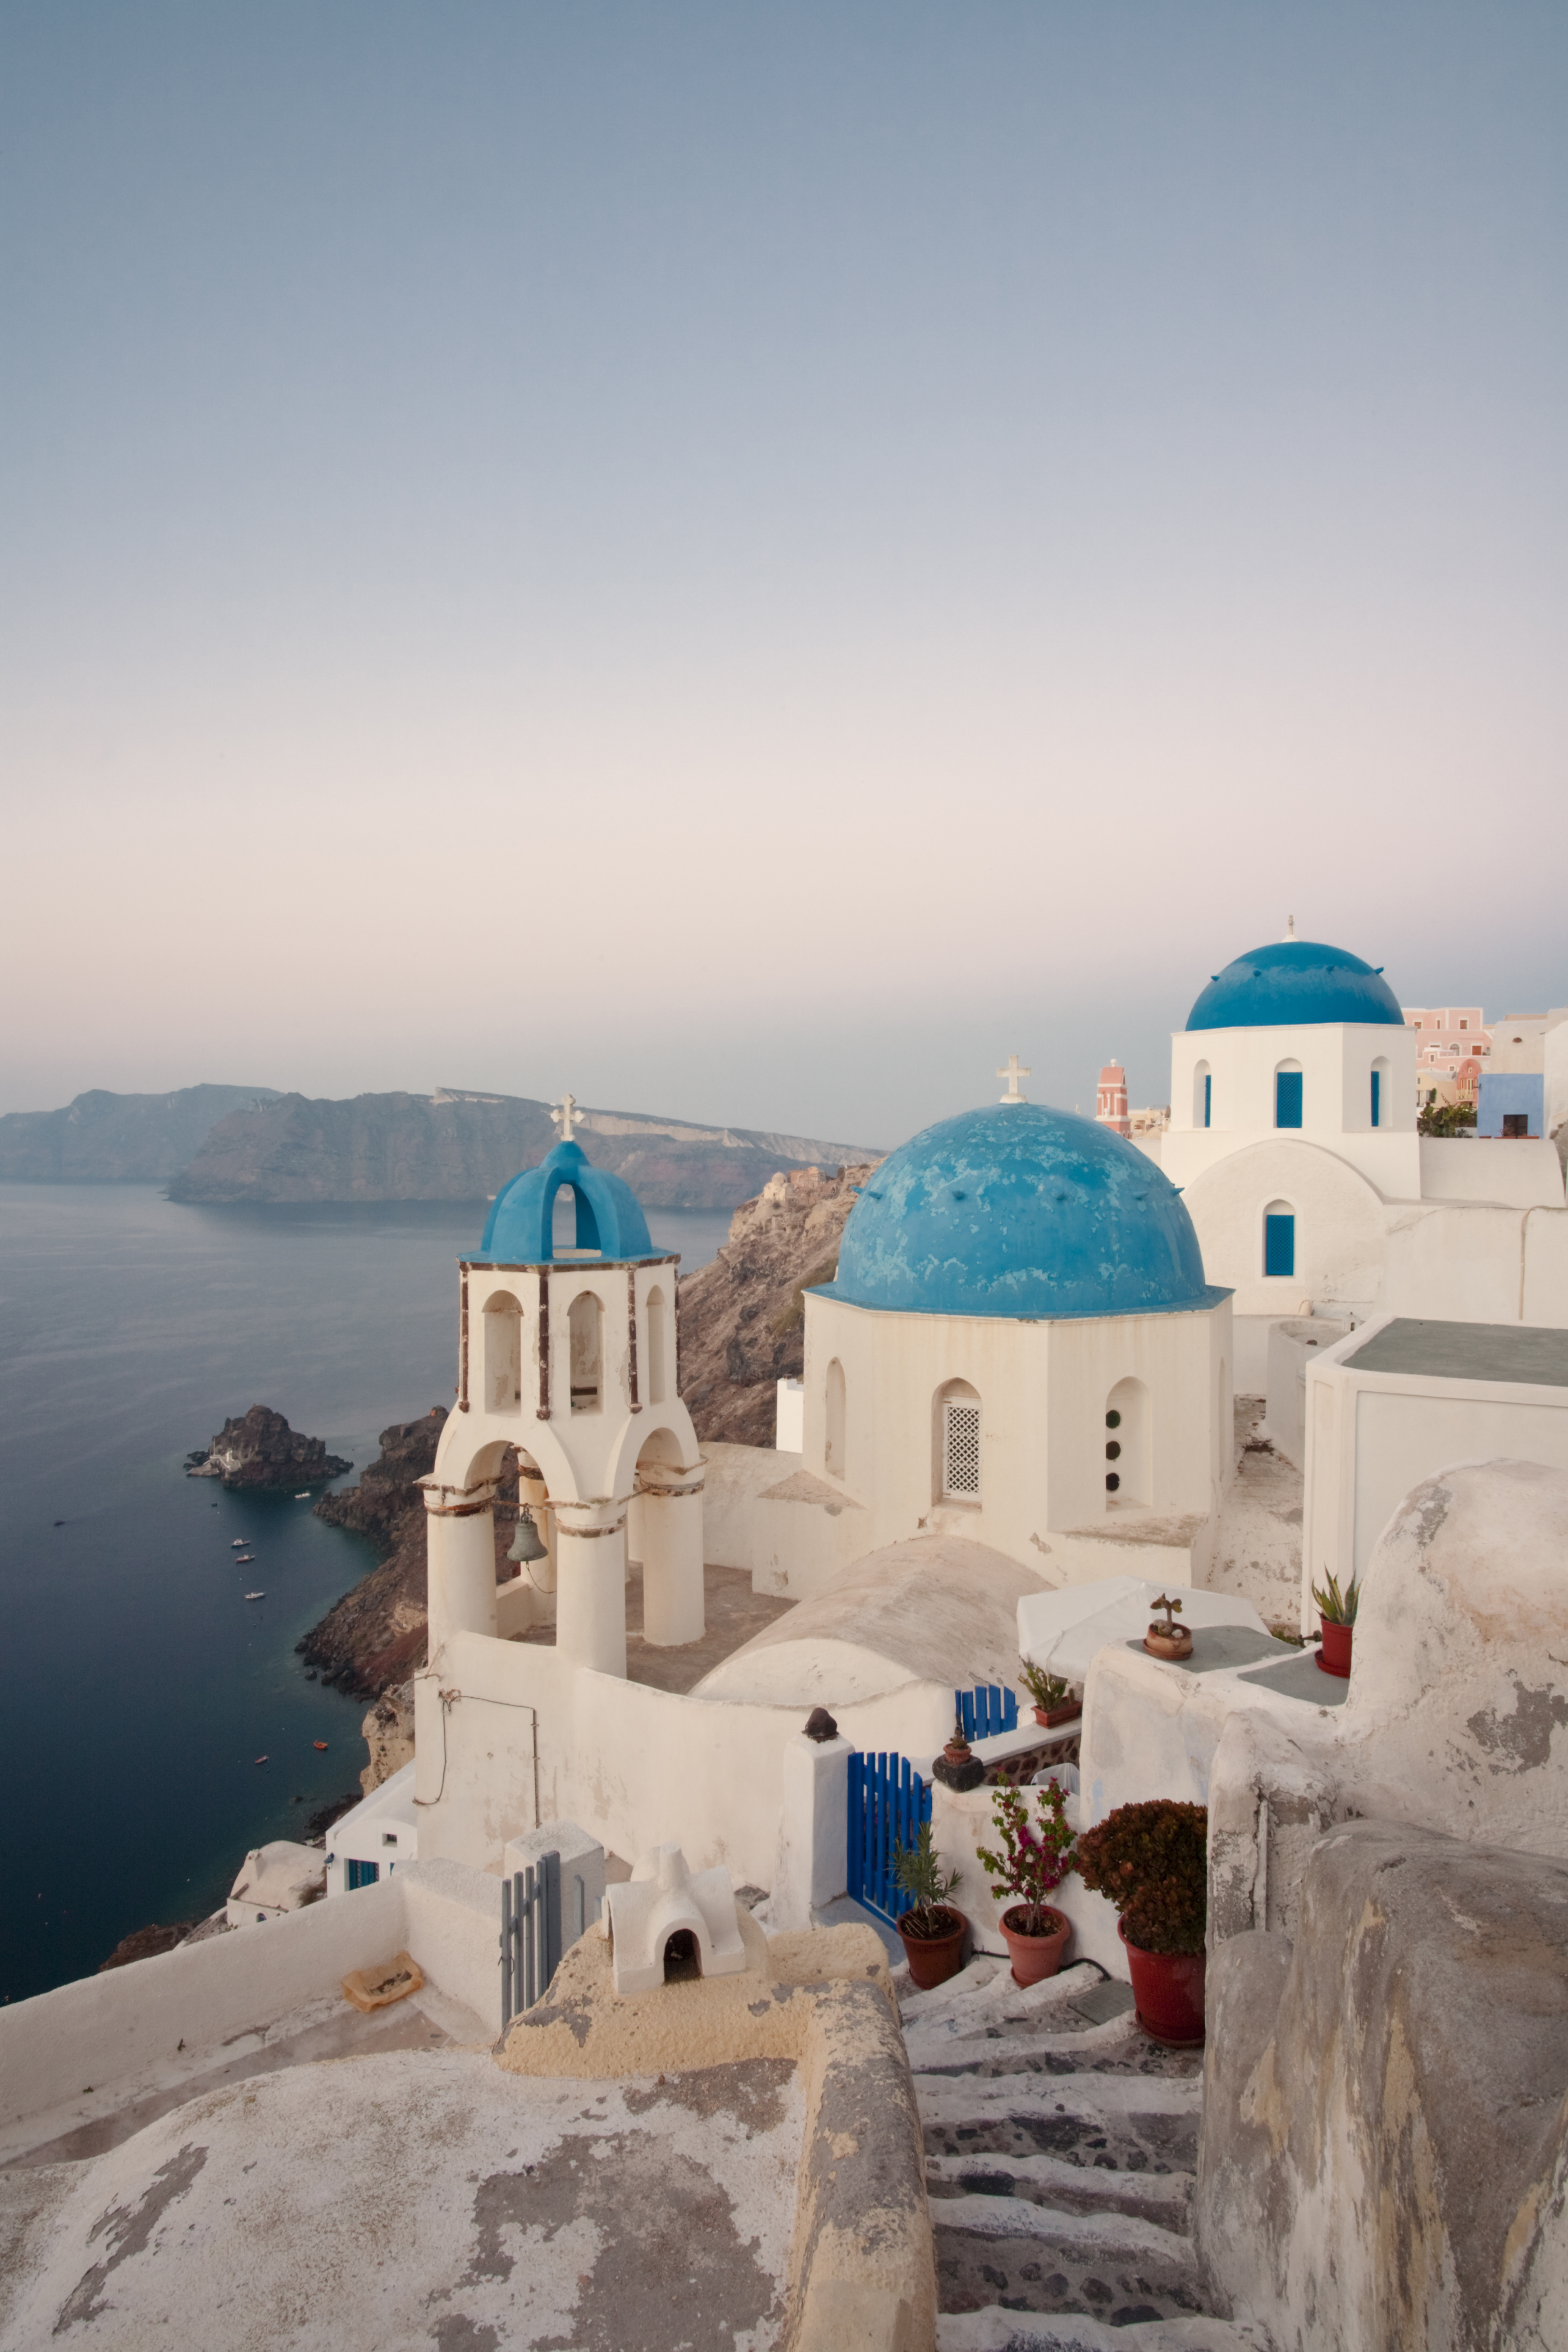 places place visit vacation santorini travel oia greece views pretty destinations wonderful greek hillside undeniably islands town head vacations country